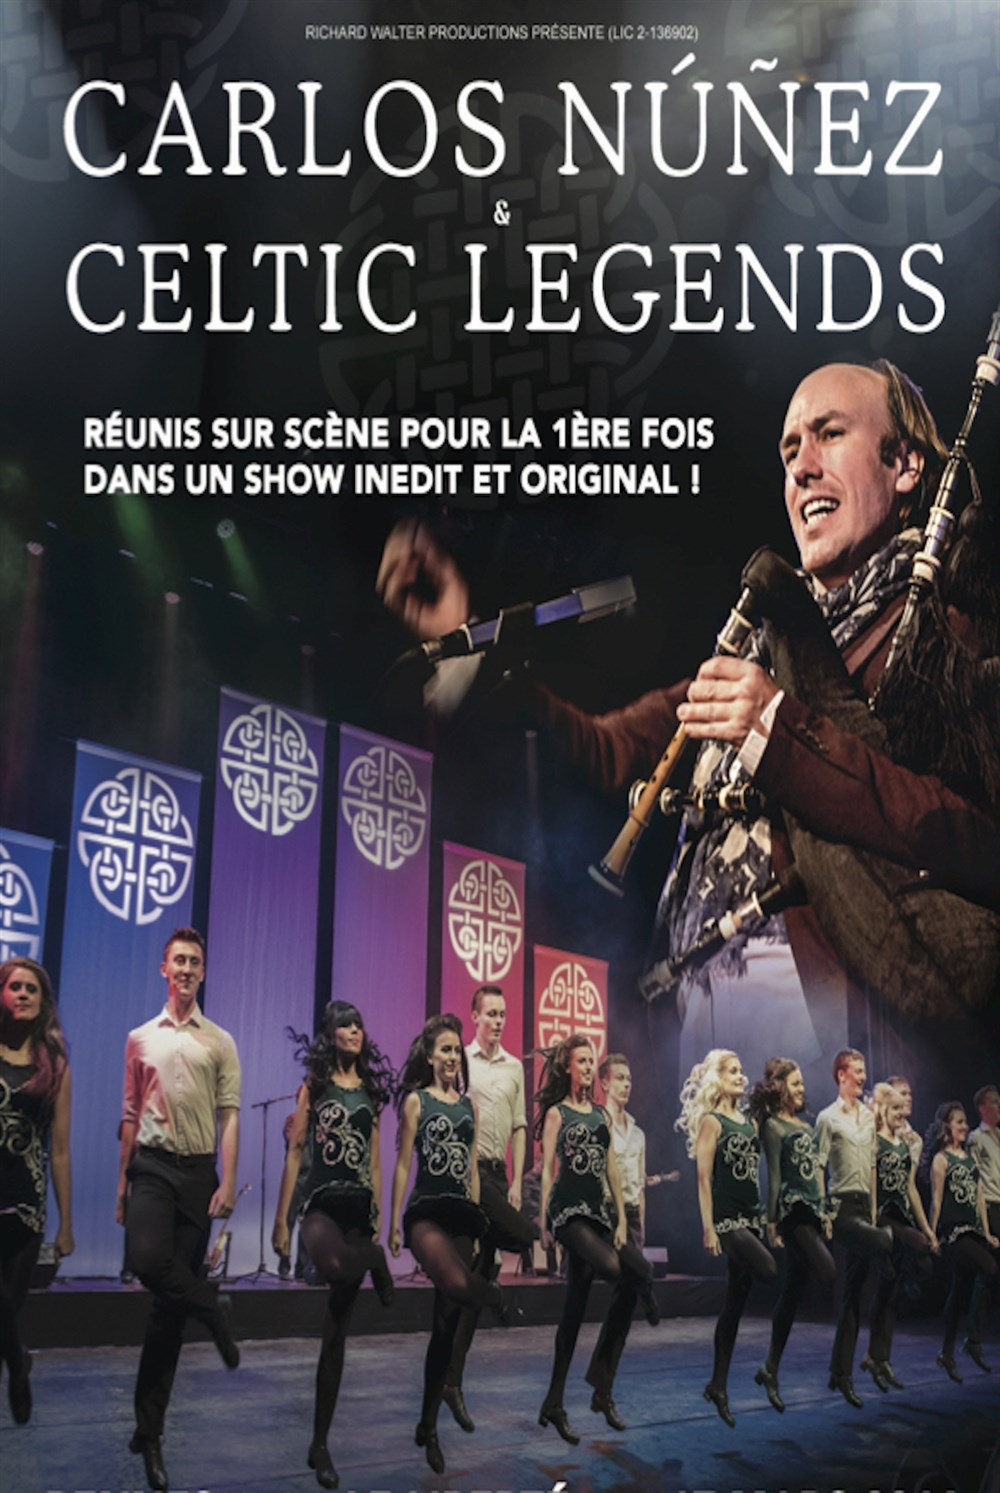 Celtic legends et Carlos Nunez Brest